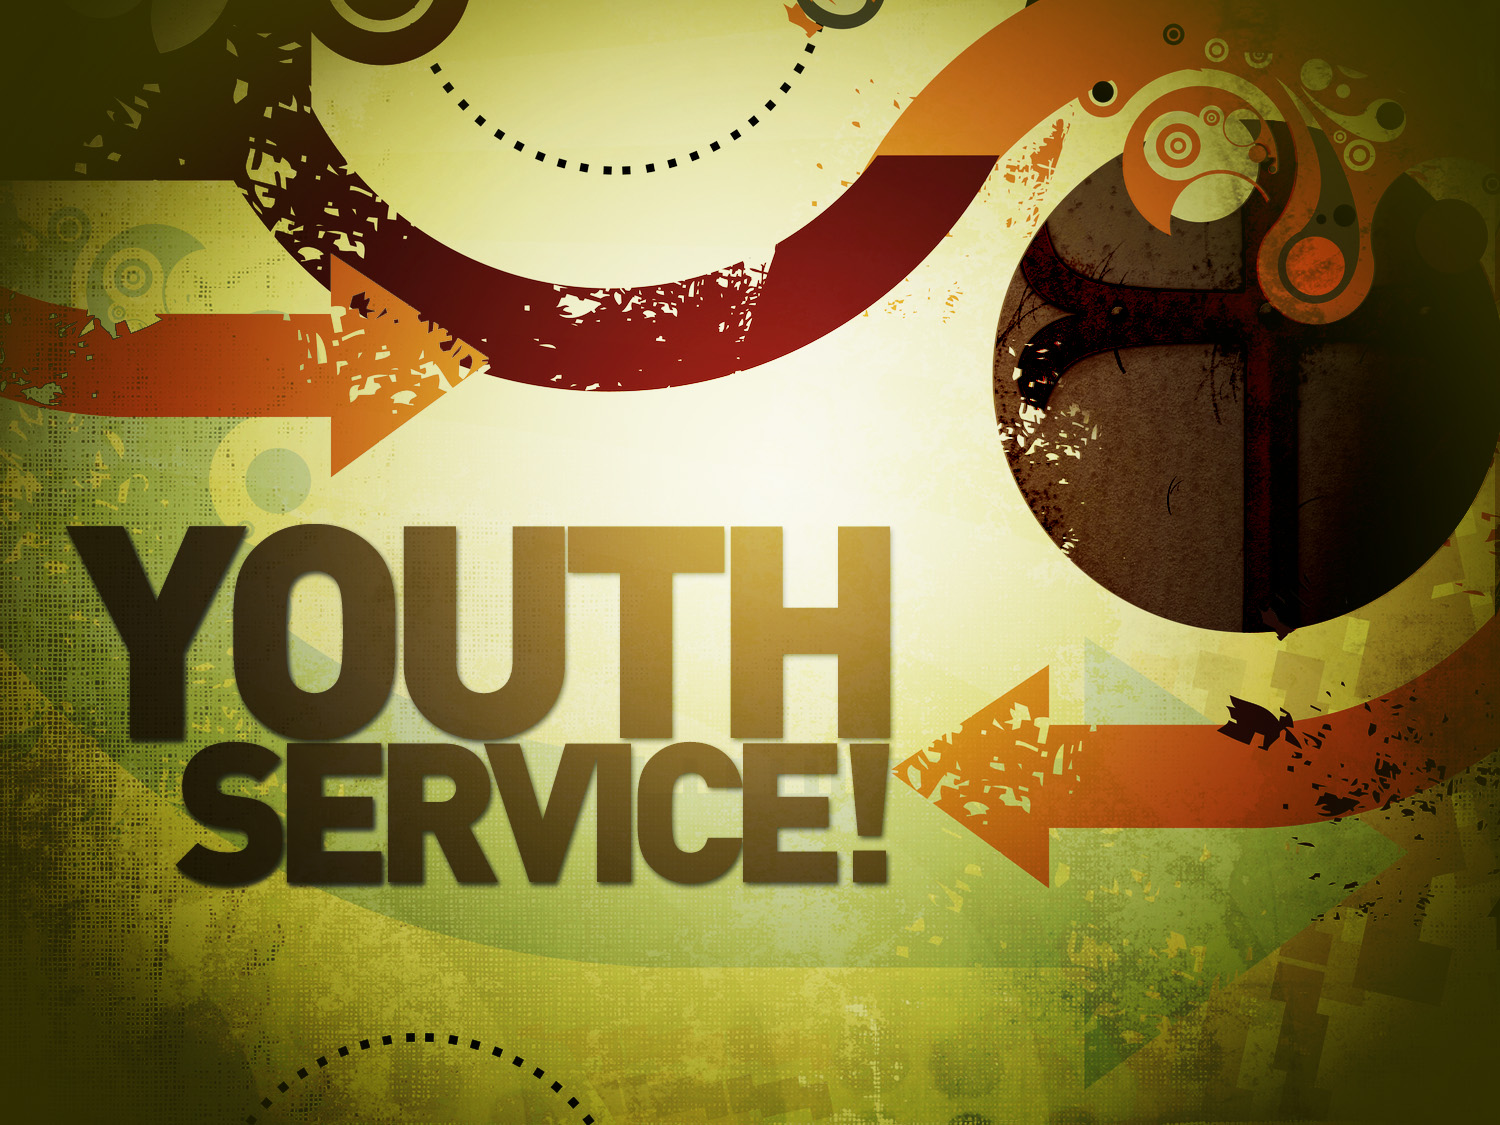 Youth service this sunday evening at 6 00 pm the service will include